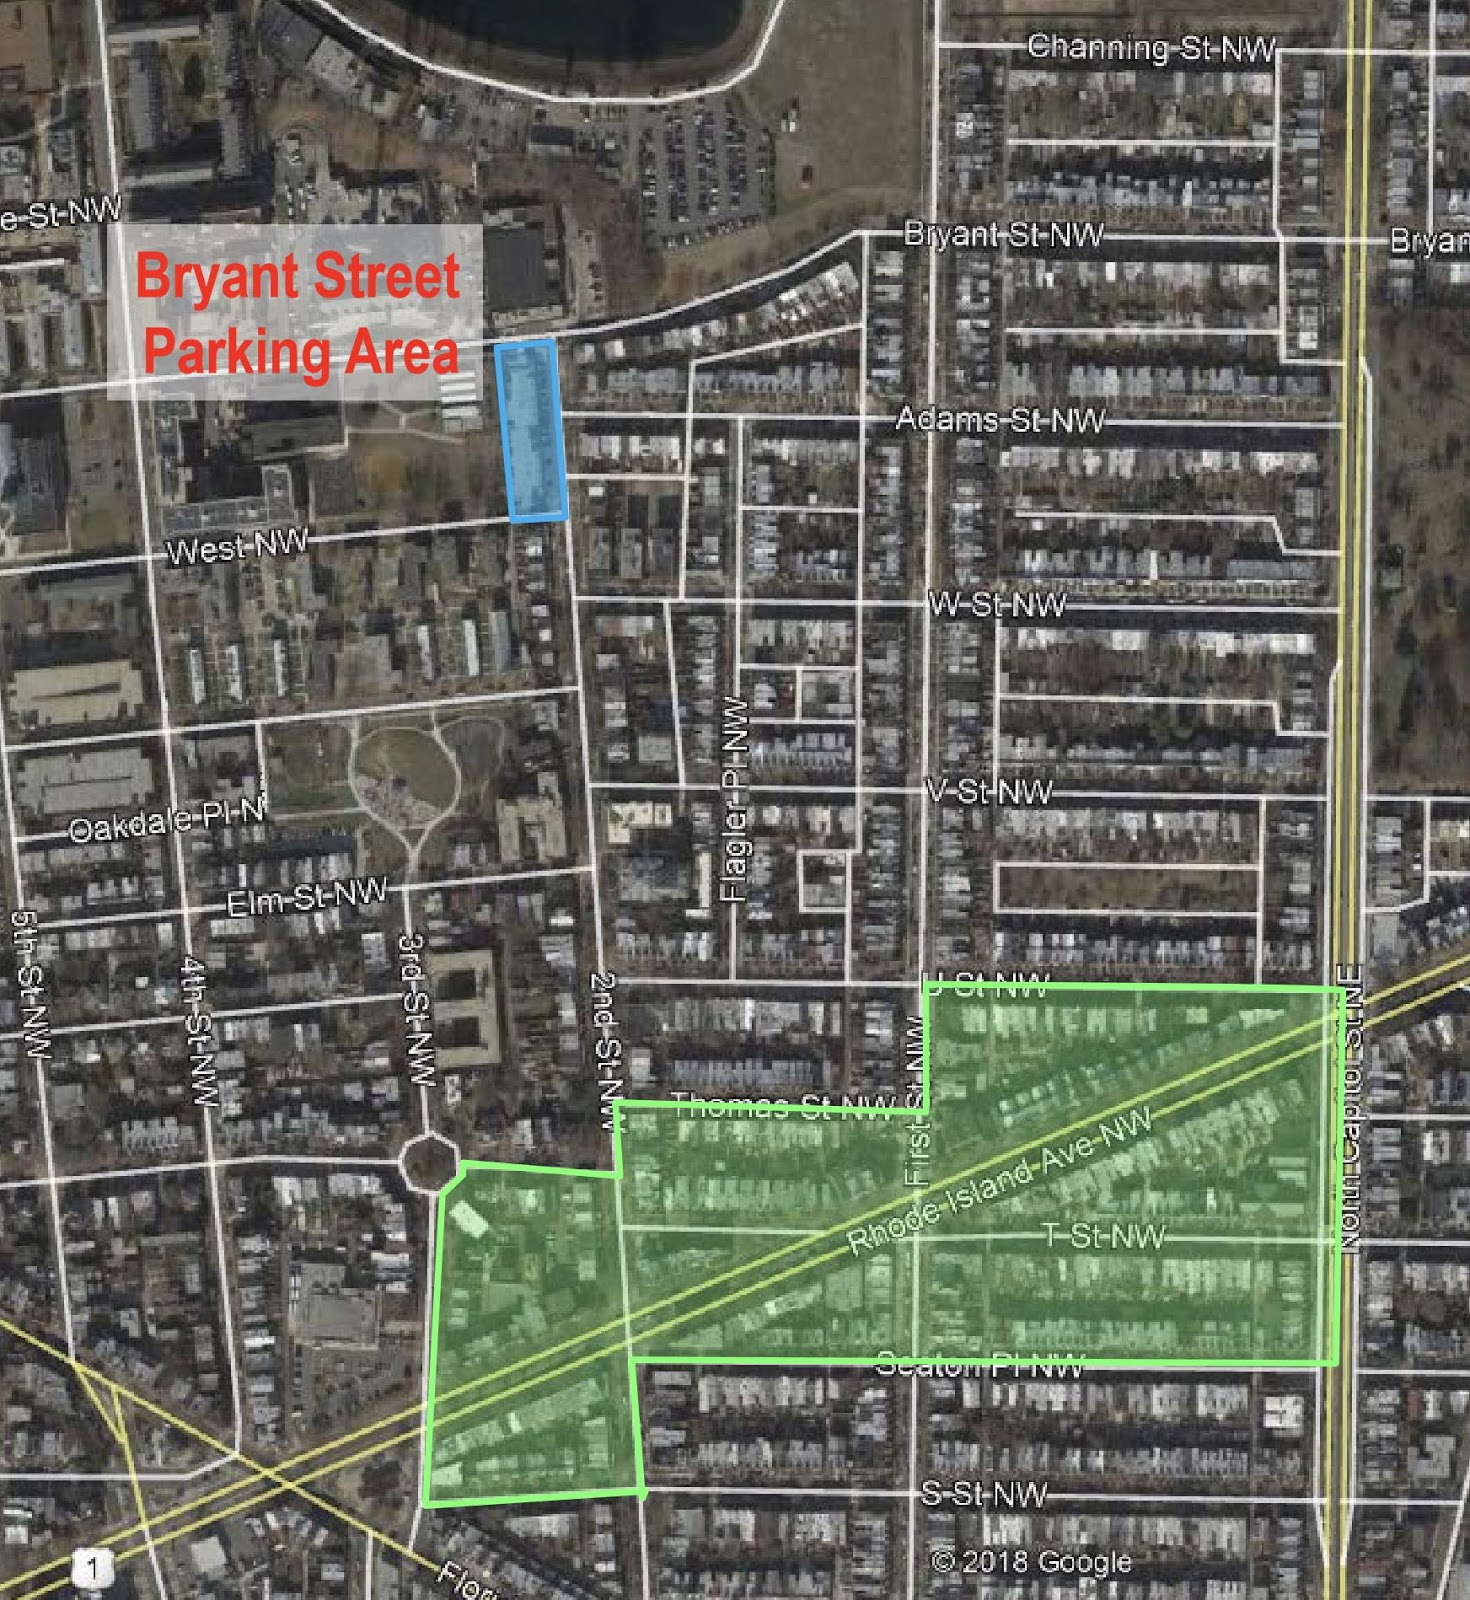 bloomingdale: see the map of the DC Water Bryant Street parking area on